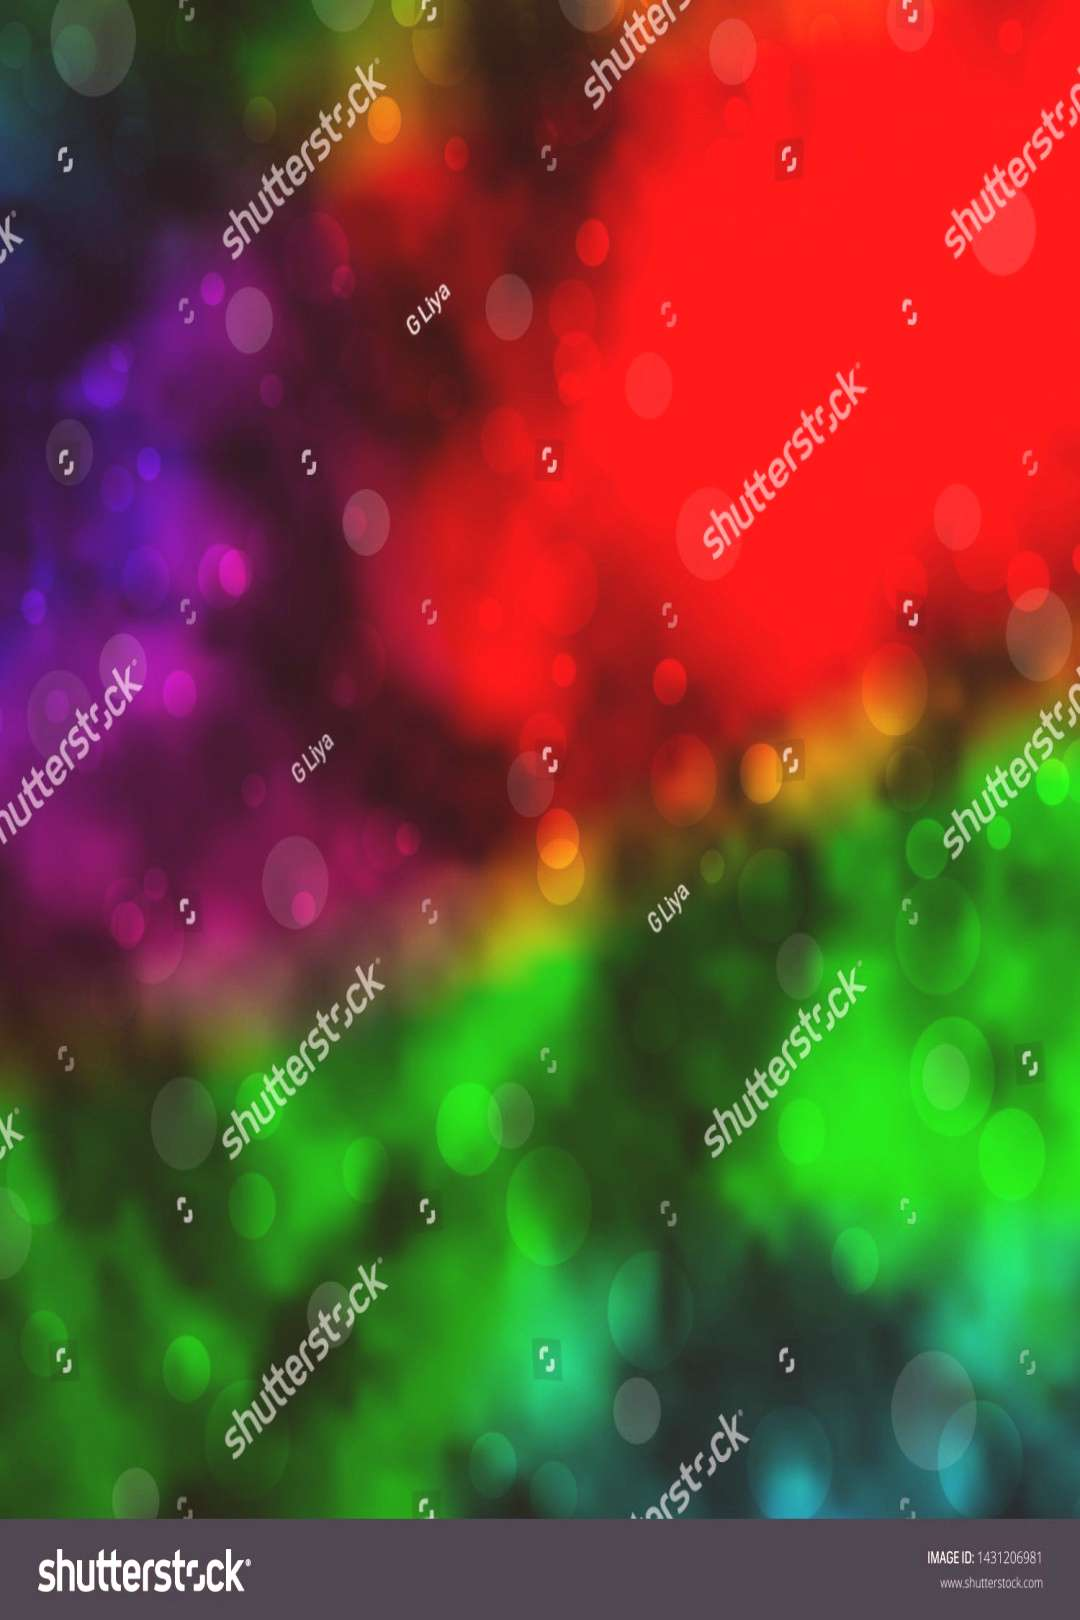 Dark Multicolor vector pattern with circles. Abstract decorative design in gradient style with bubb